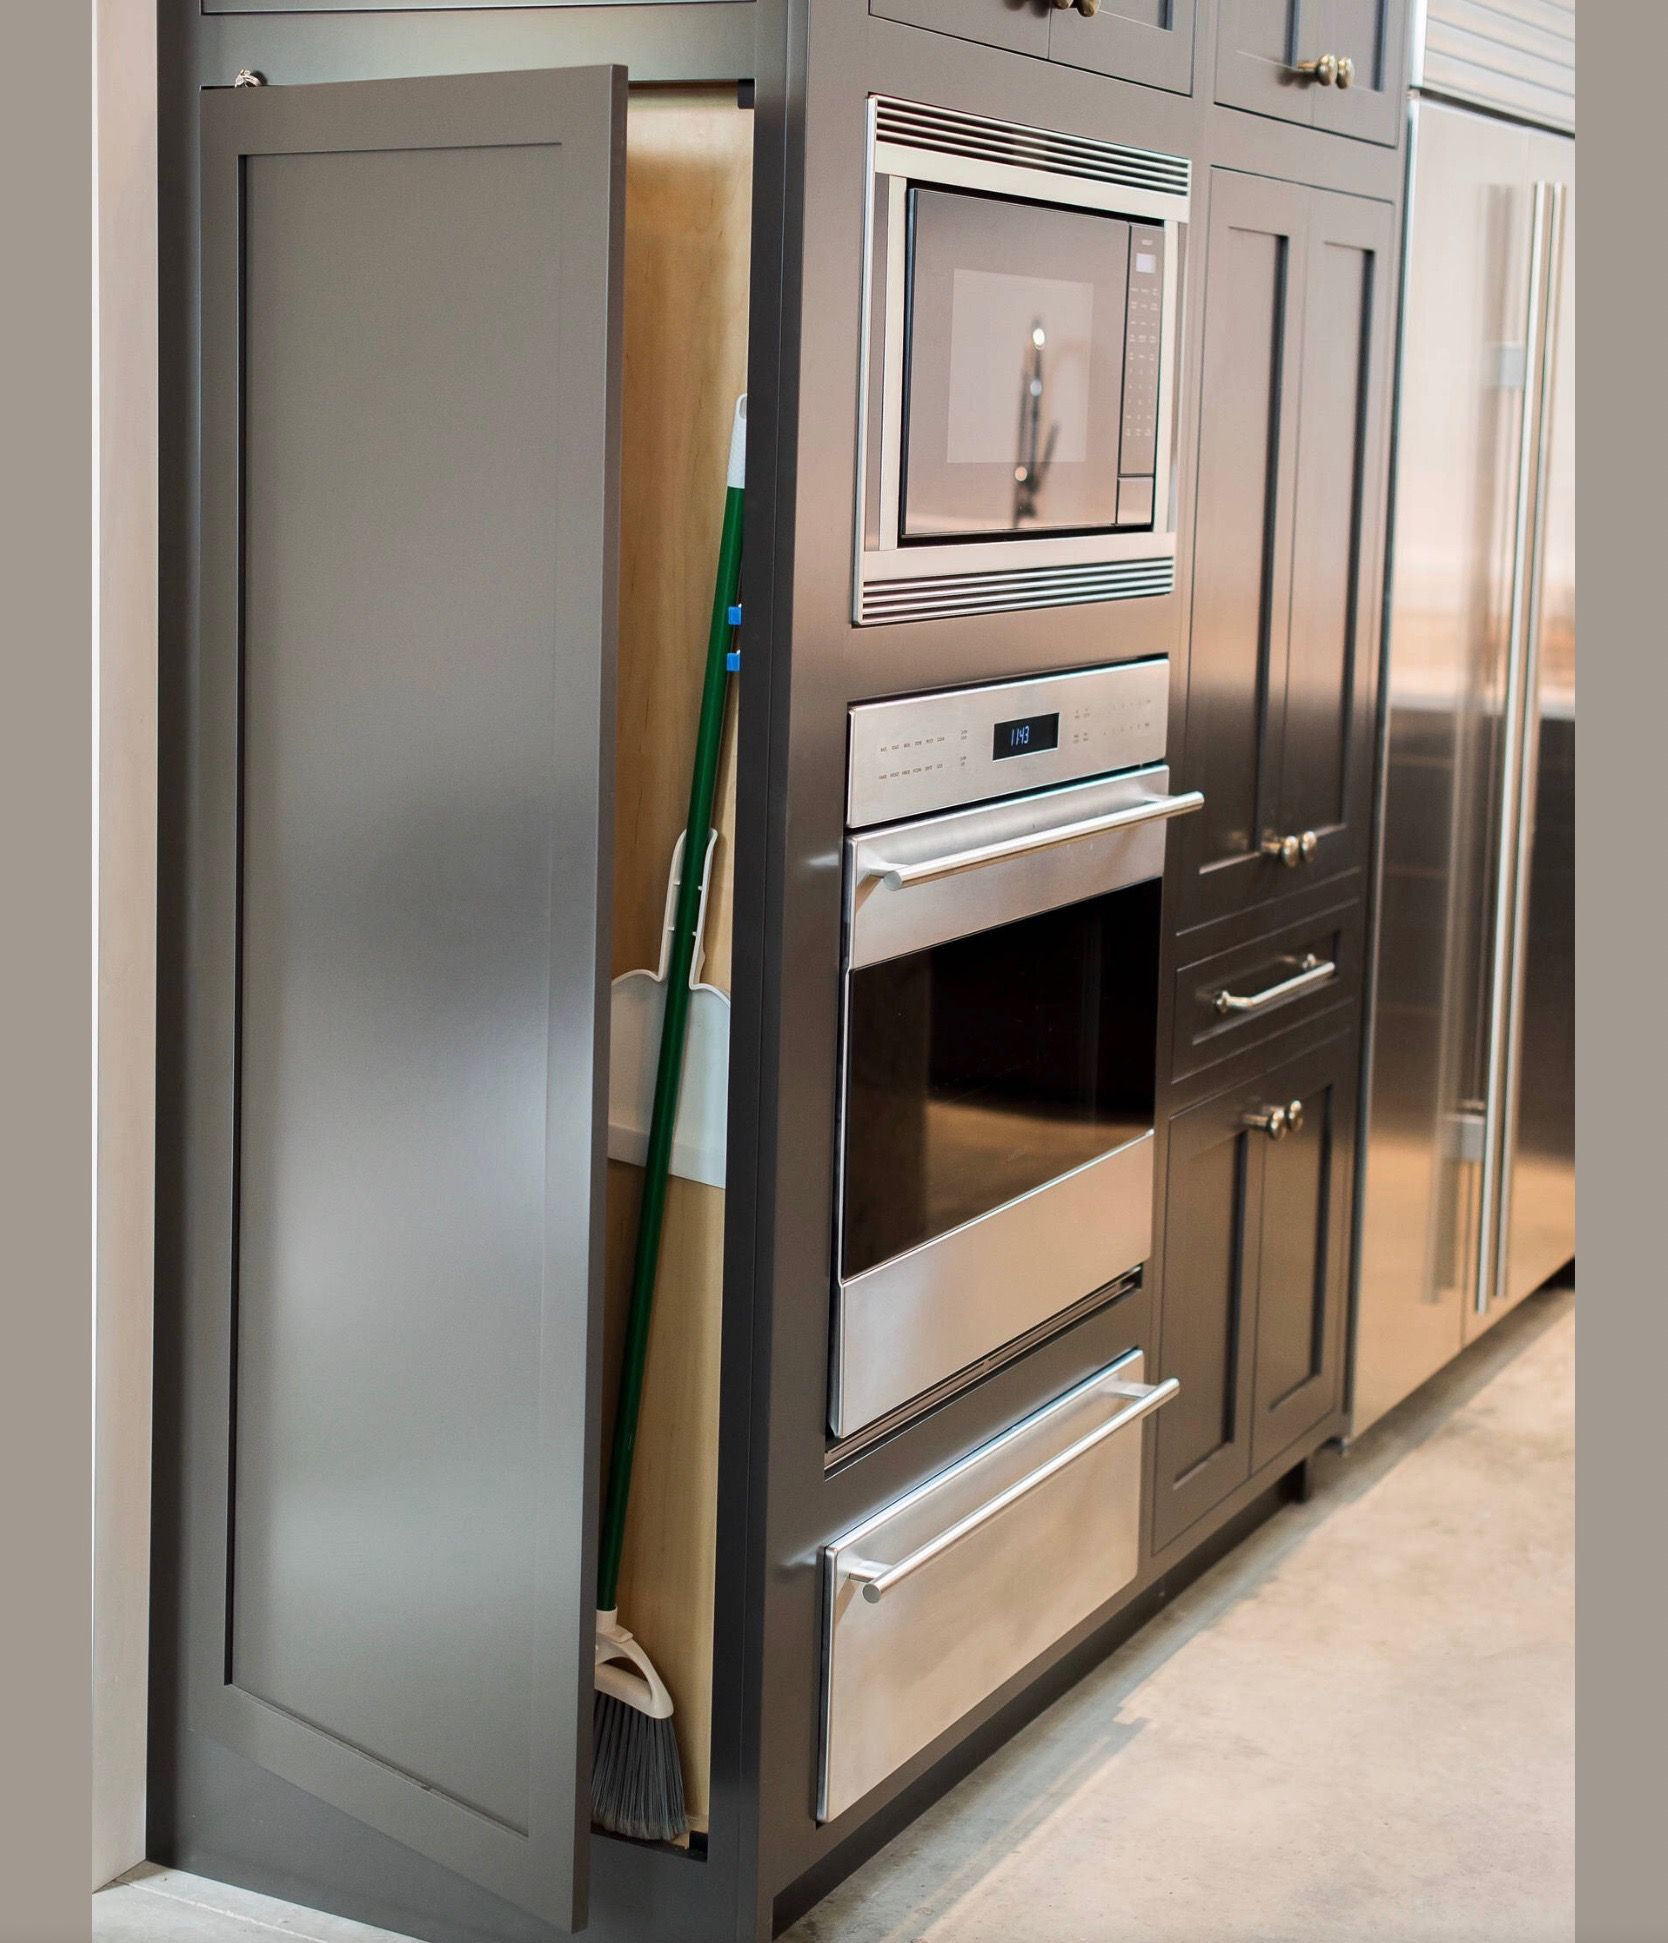 Pin by Cheryl on Kitchens | Kitchen cabinets repair ...